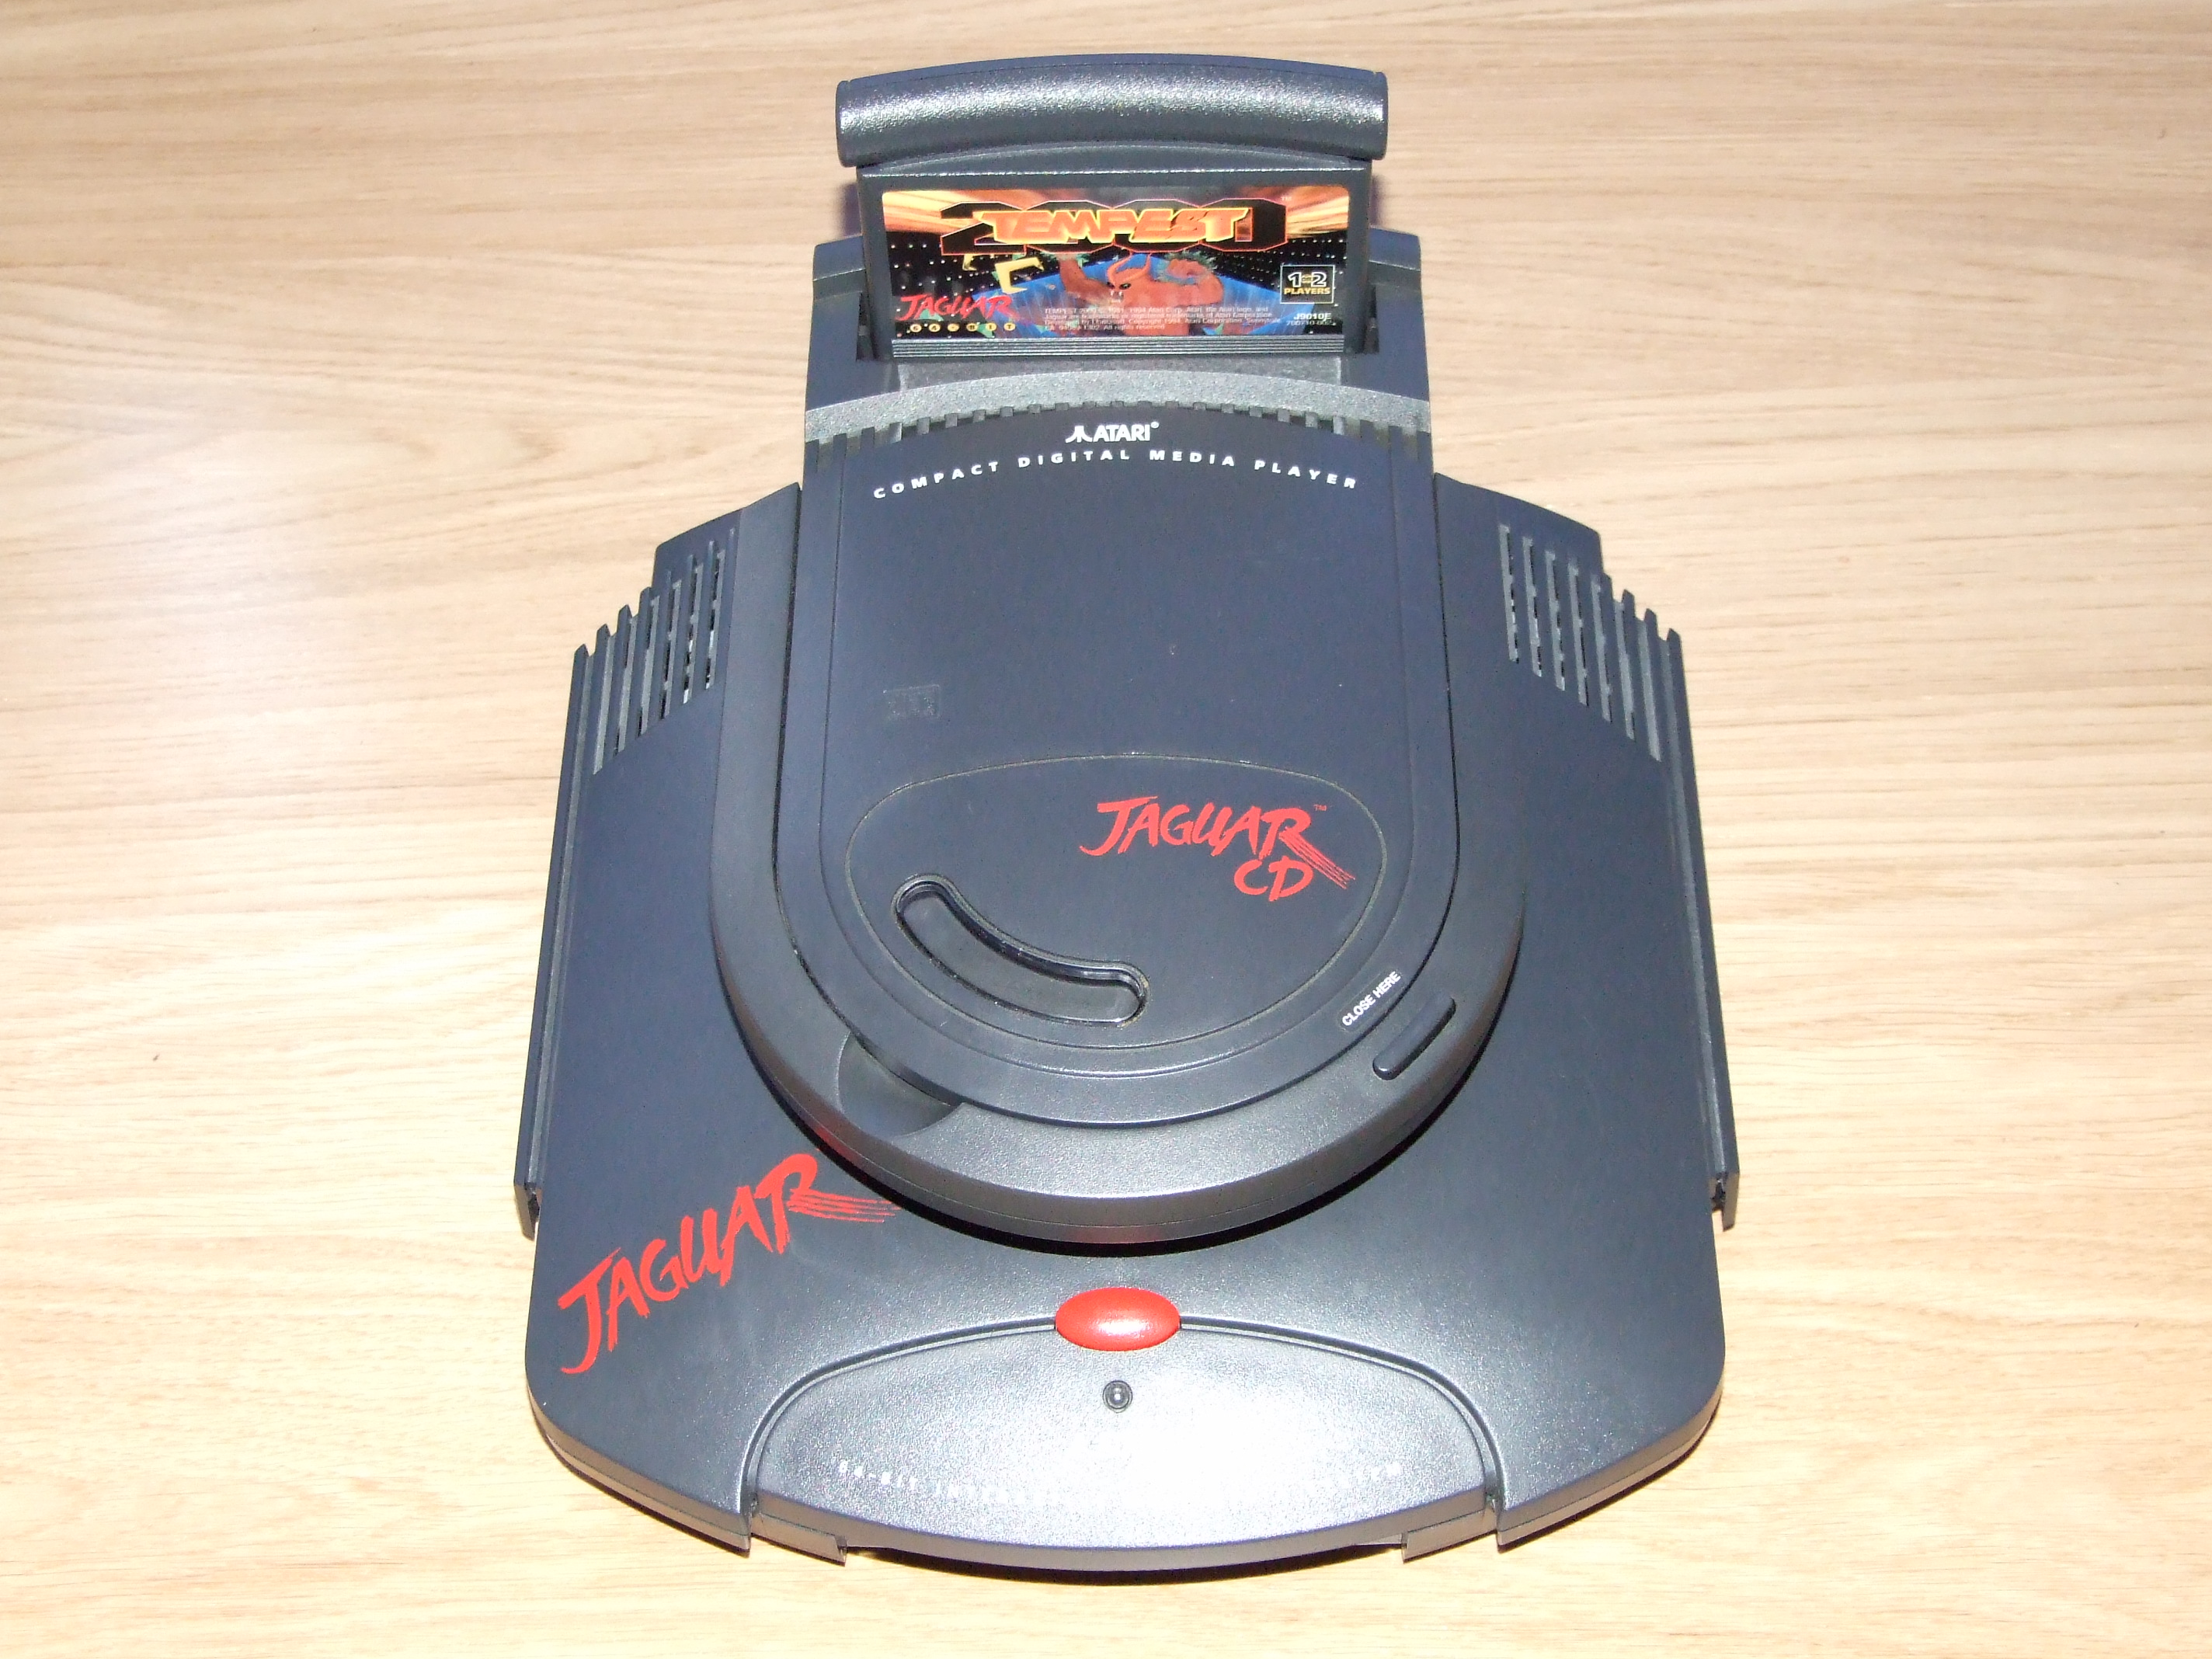 The Jaguar + Jaguar CD with a cartridge slot at the back, or as I like to call it, the toilet formation!